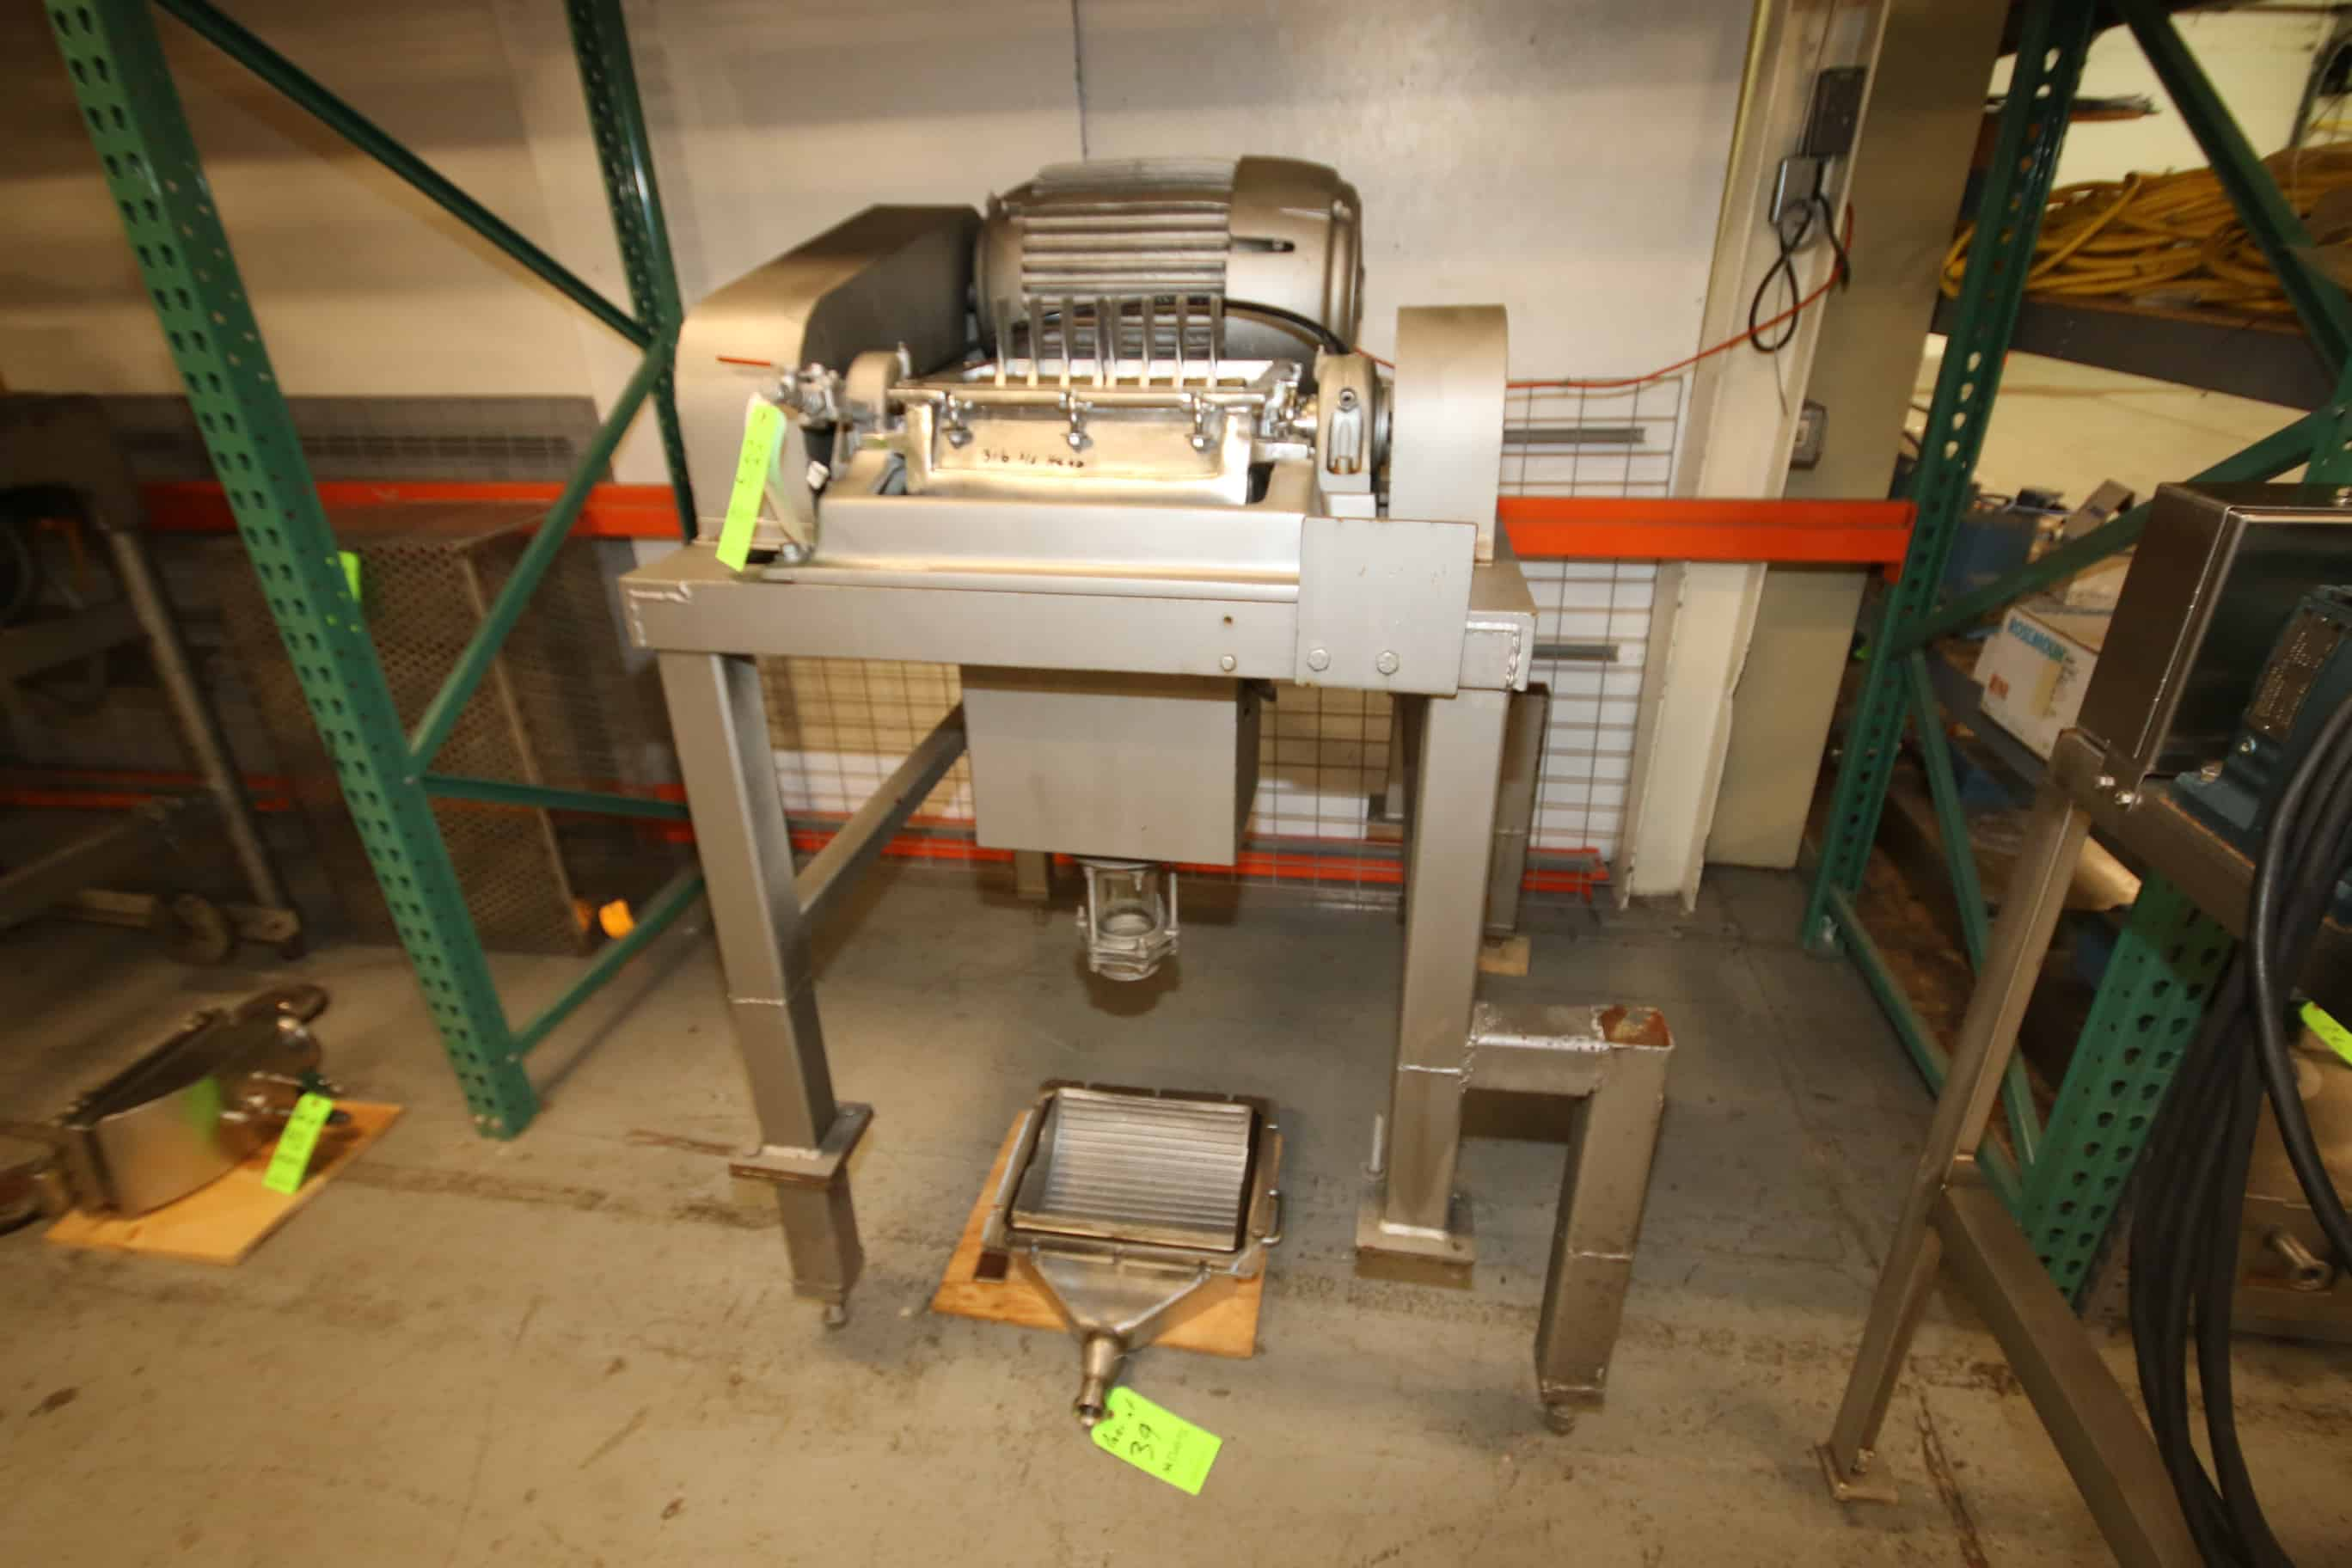 Fitzpatrick Comminuting Fitzmill with 316 S/S Head, 13″ x 11″ Blade Area, 30 hp, 3520 RPM Motor, 230/460 V, 3 Phase (Located in Pittsburgh)